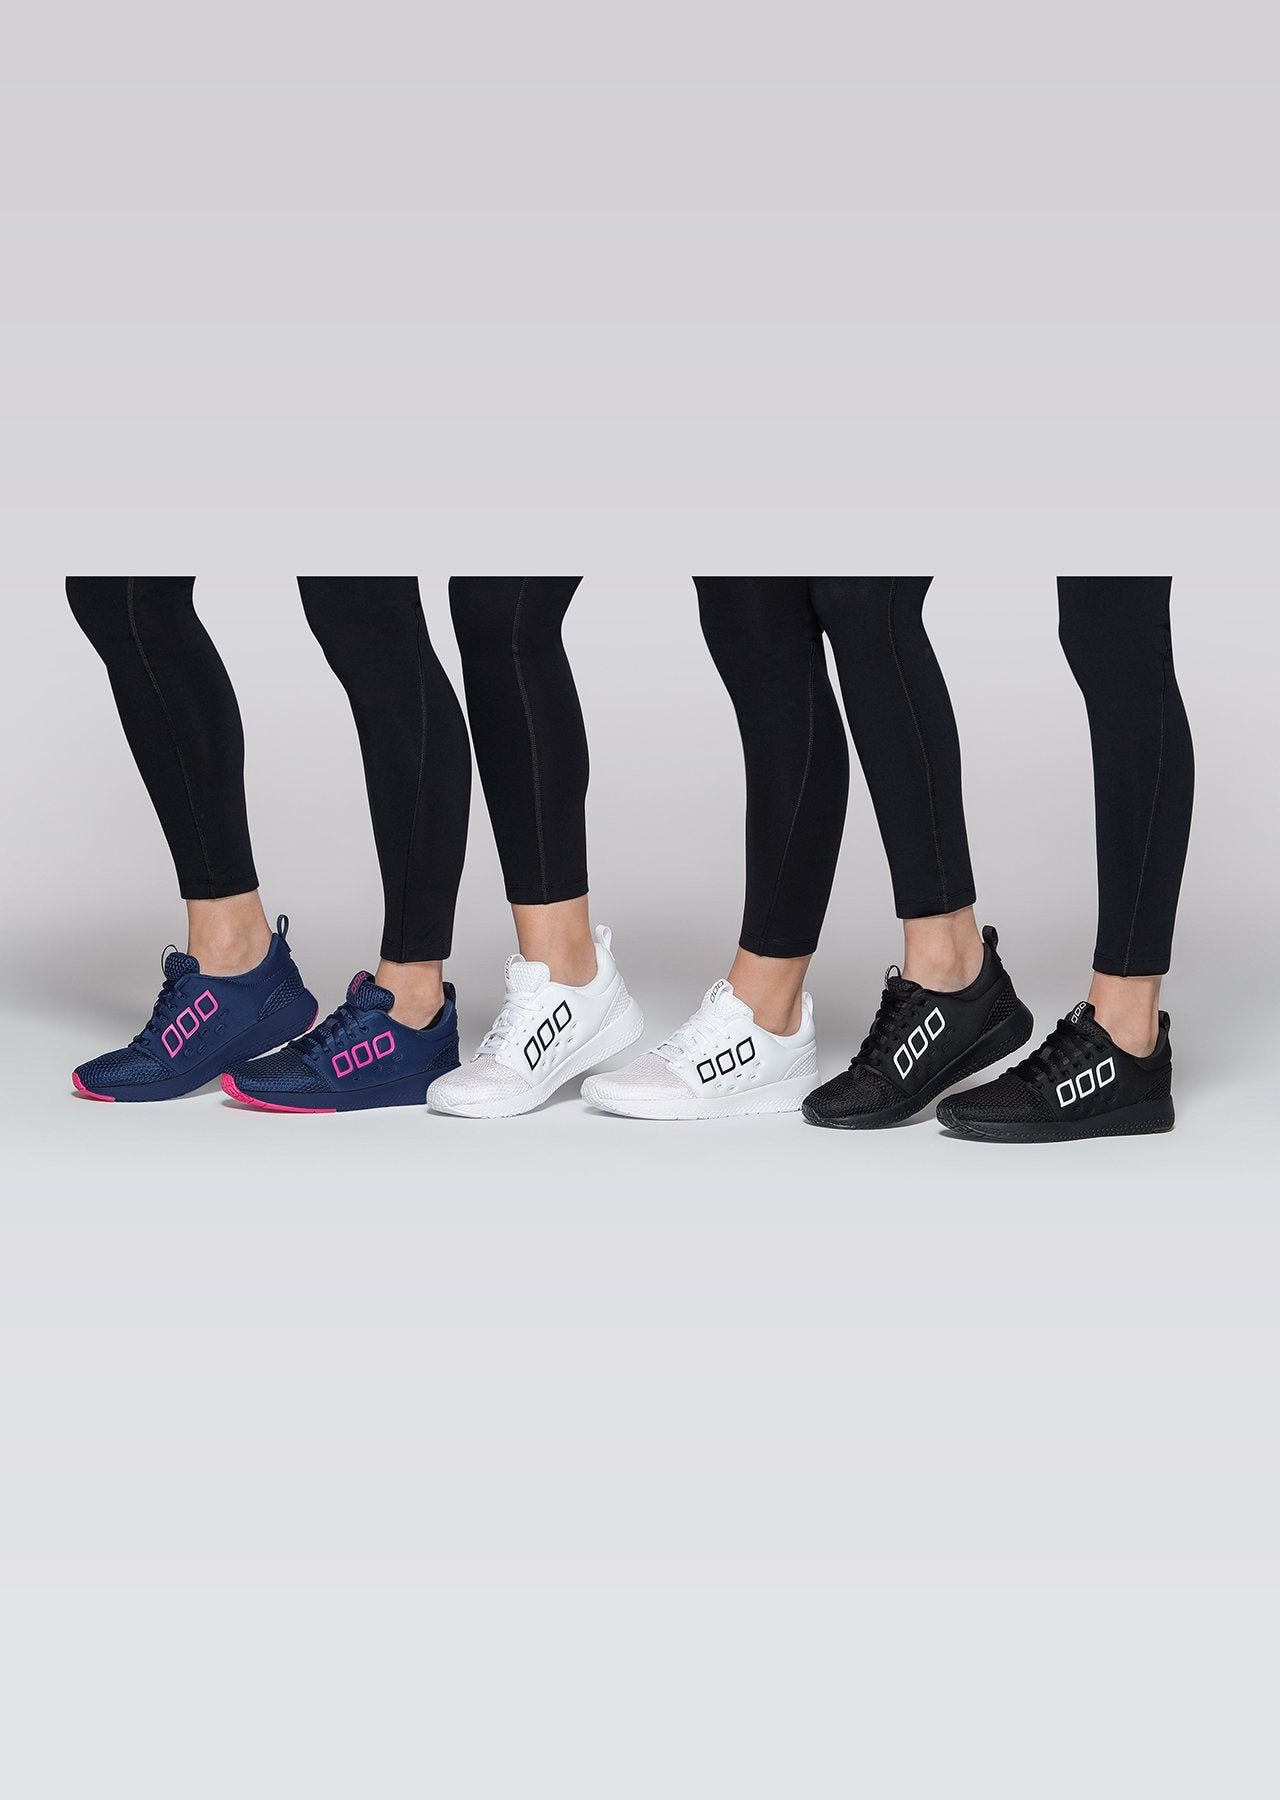 Elevate Blaze 1.8-FOOTWEAR-LORNA JANE-Believe Active